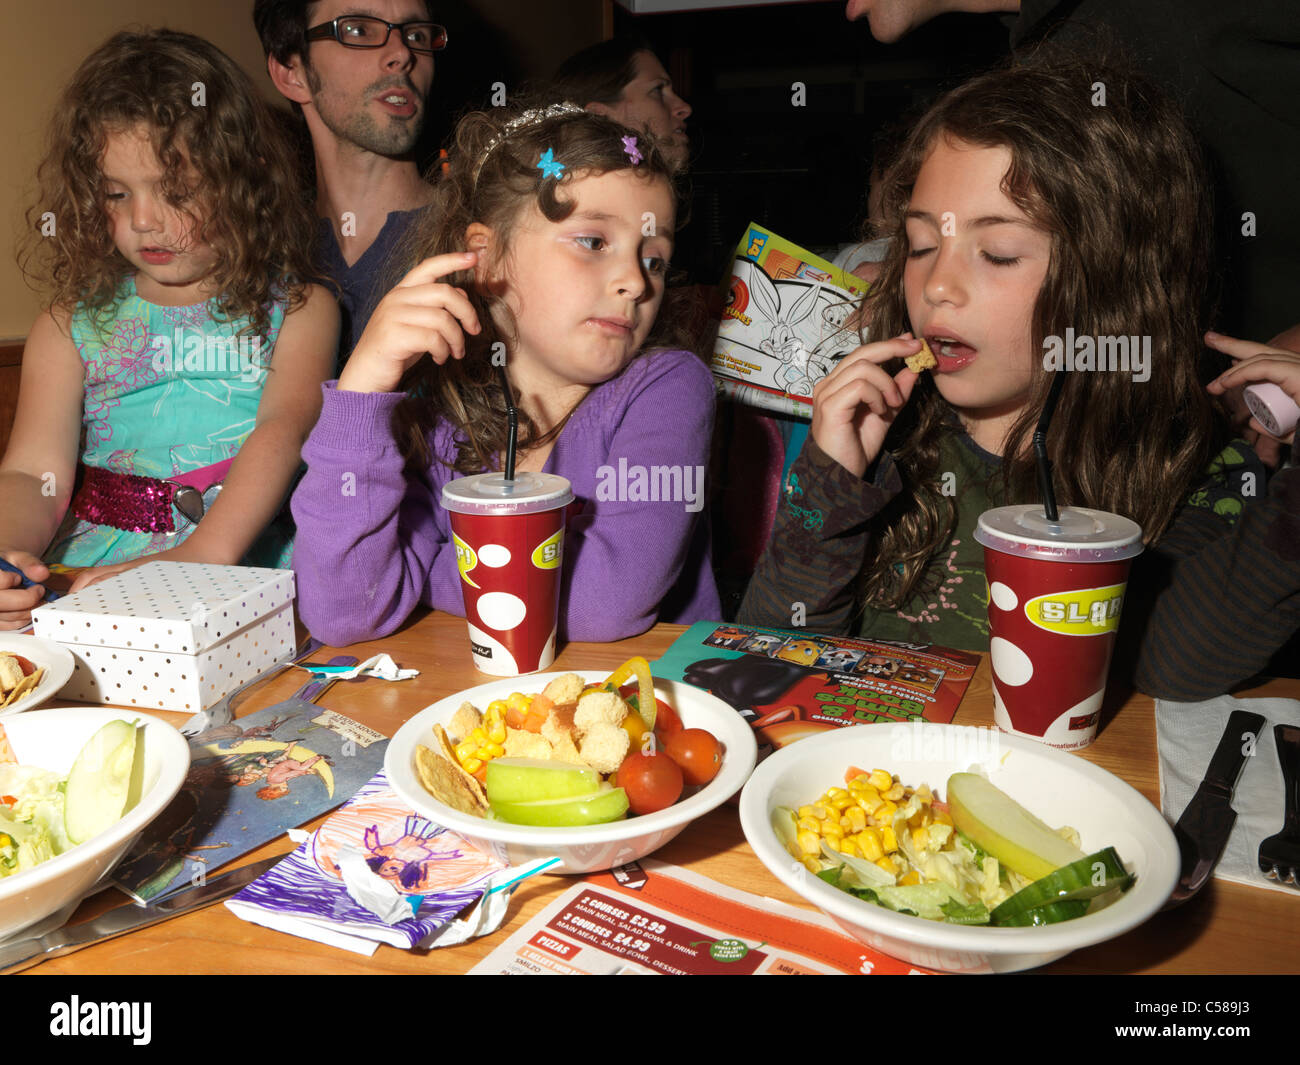 Childrens Birthday Party In Pizza Hut Young Girls Eating Stock - Childrens birthday parties pizza hut